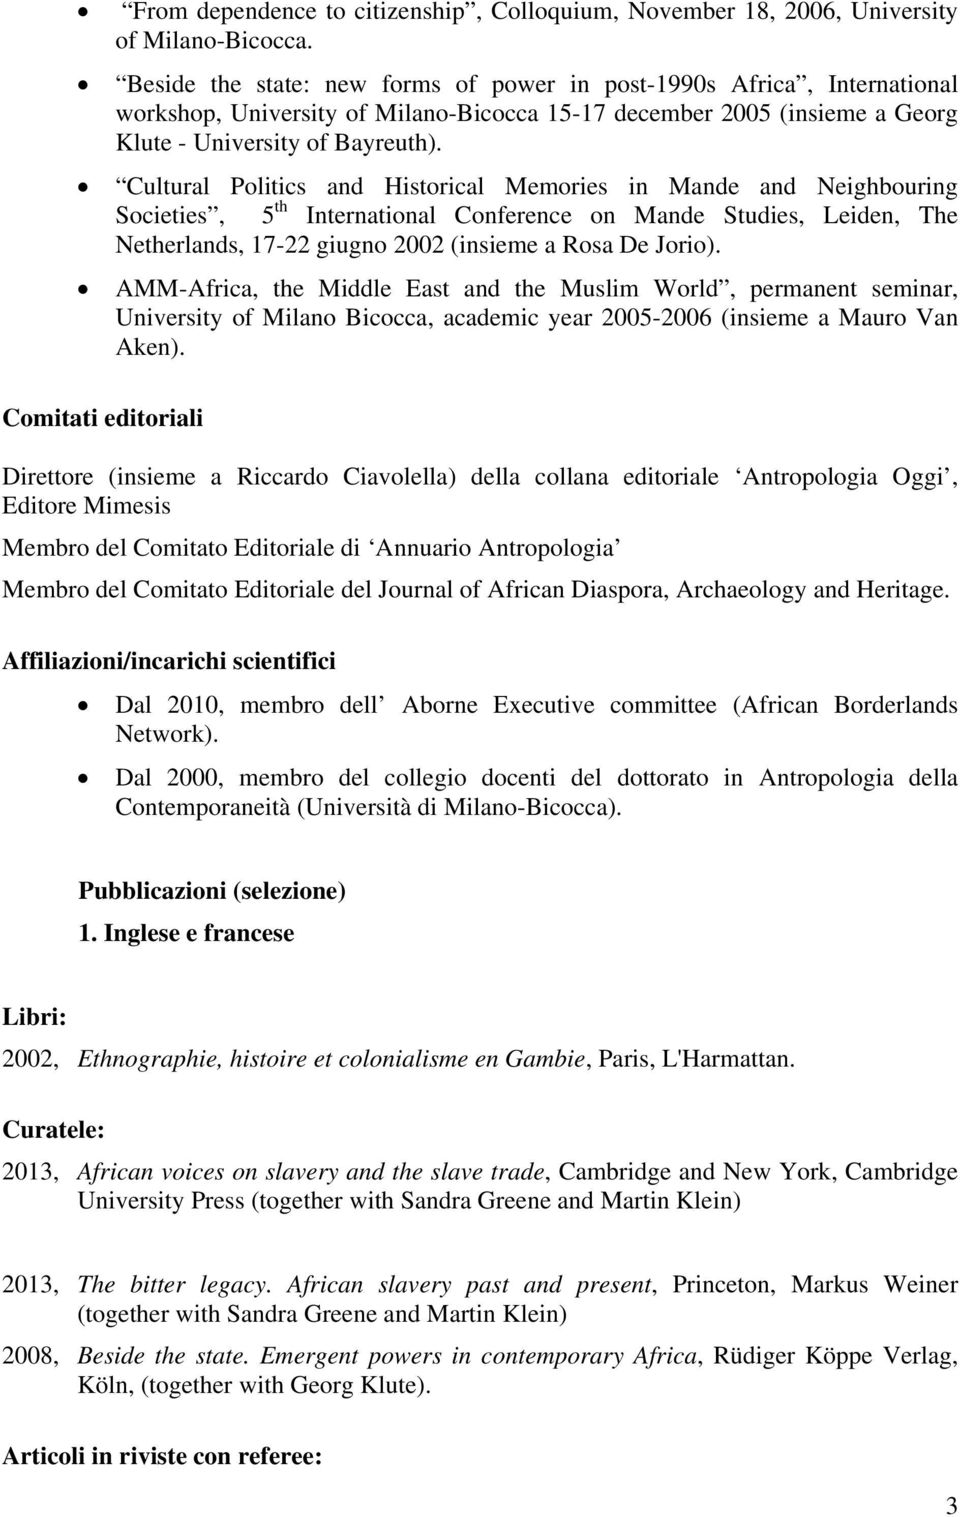 Cultural Politics and Historical Memories in Mande and Neighbouring Societies, 5 th International Conference on Mande Studies, Leiden, The Netherlands, 17-22 giugno 2002 (insieme a Rosa De Jorio).